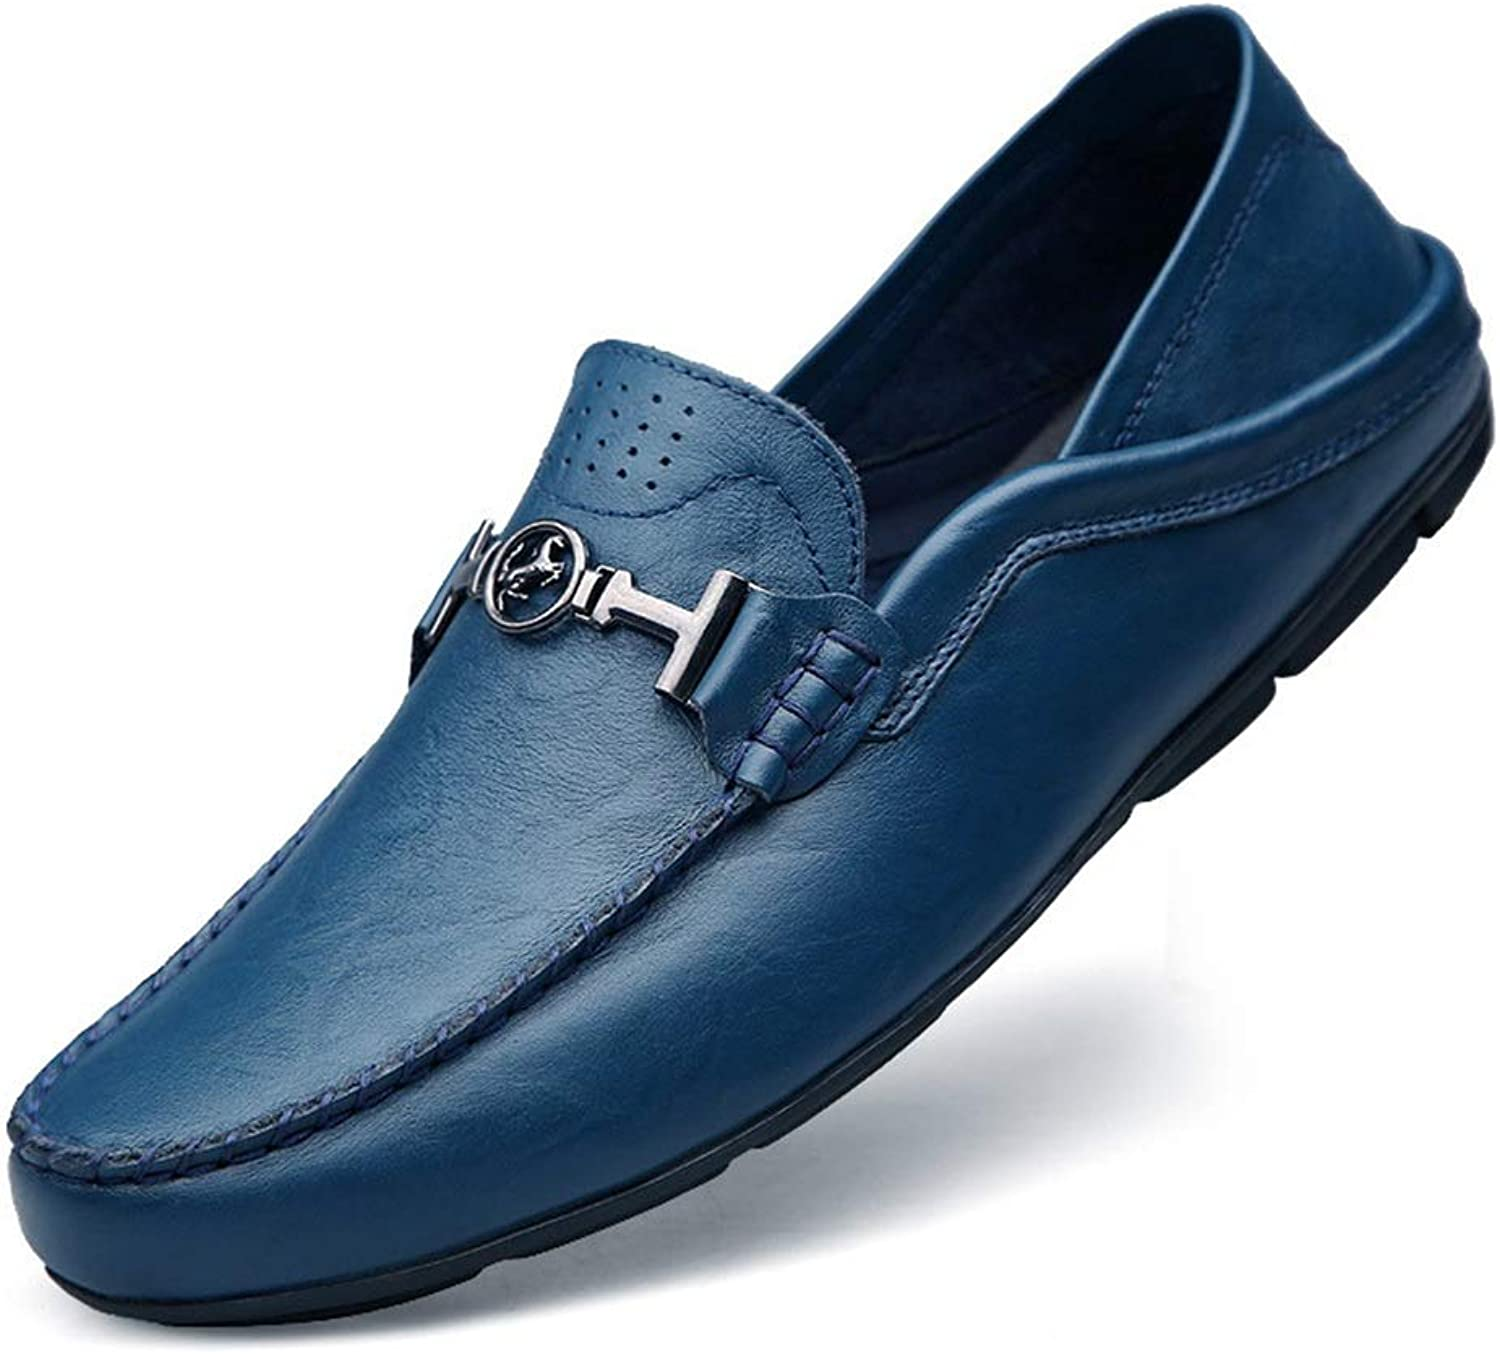 Men's Business shoes Men's Leather Low Cut shoes Comfort Flats Business shoes Boat shoes Driving shoes Loafer Flats Handmade Moccasin-Gommino